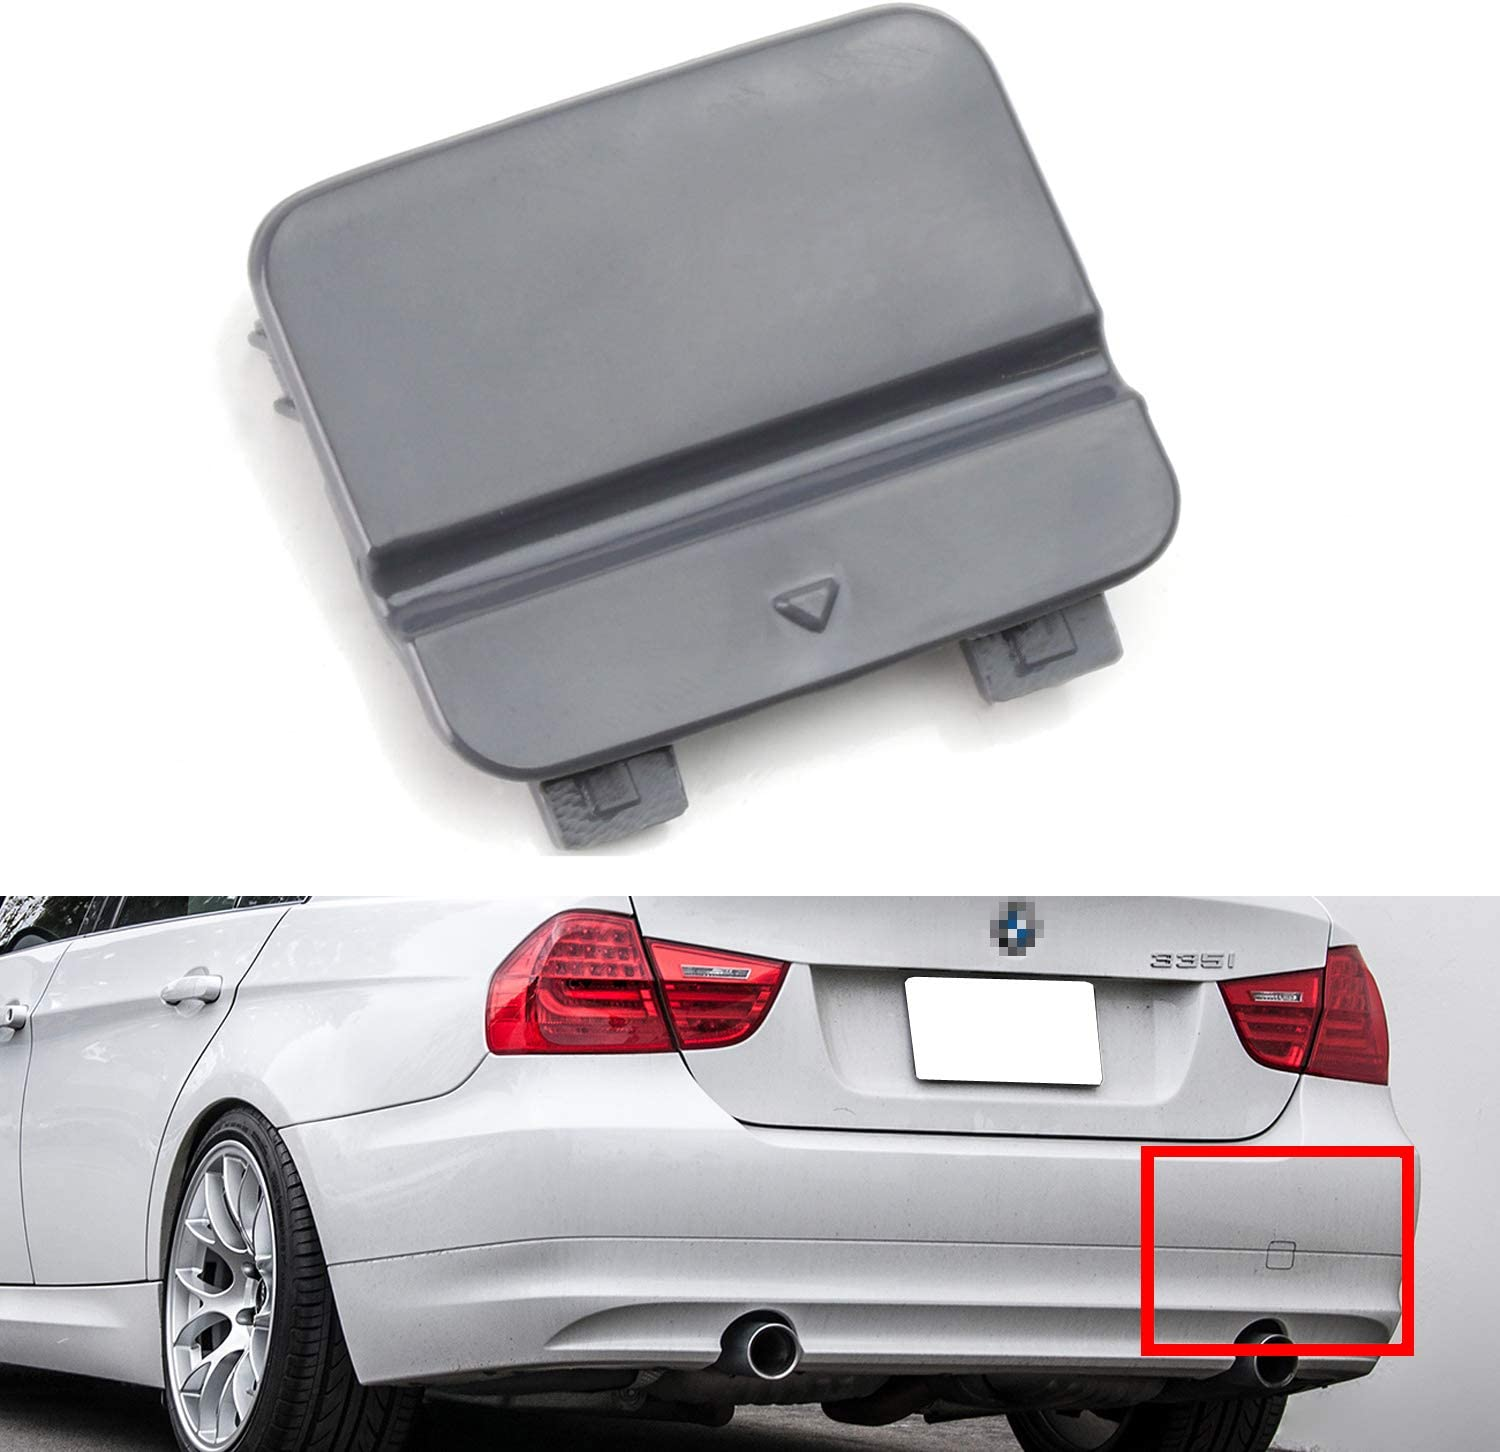 iJDMTOY Rear Bumper Tow Hook Compatible Wi Cover Cap Elegant Same day shipping Replacement